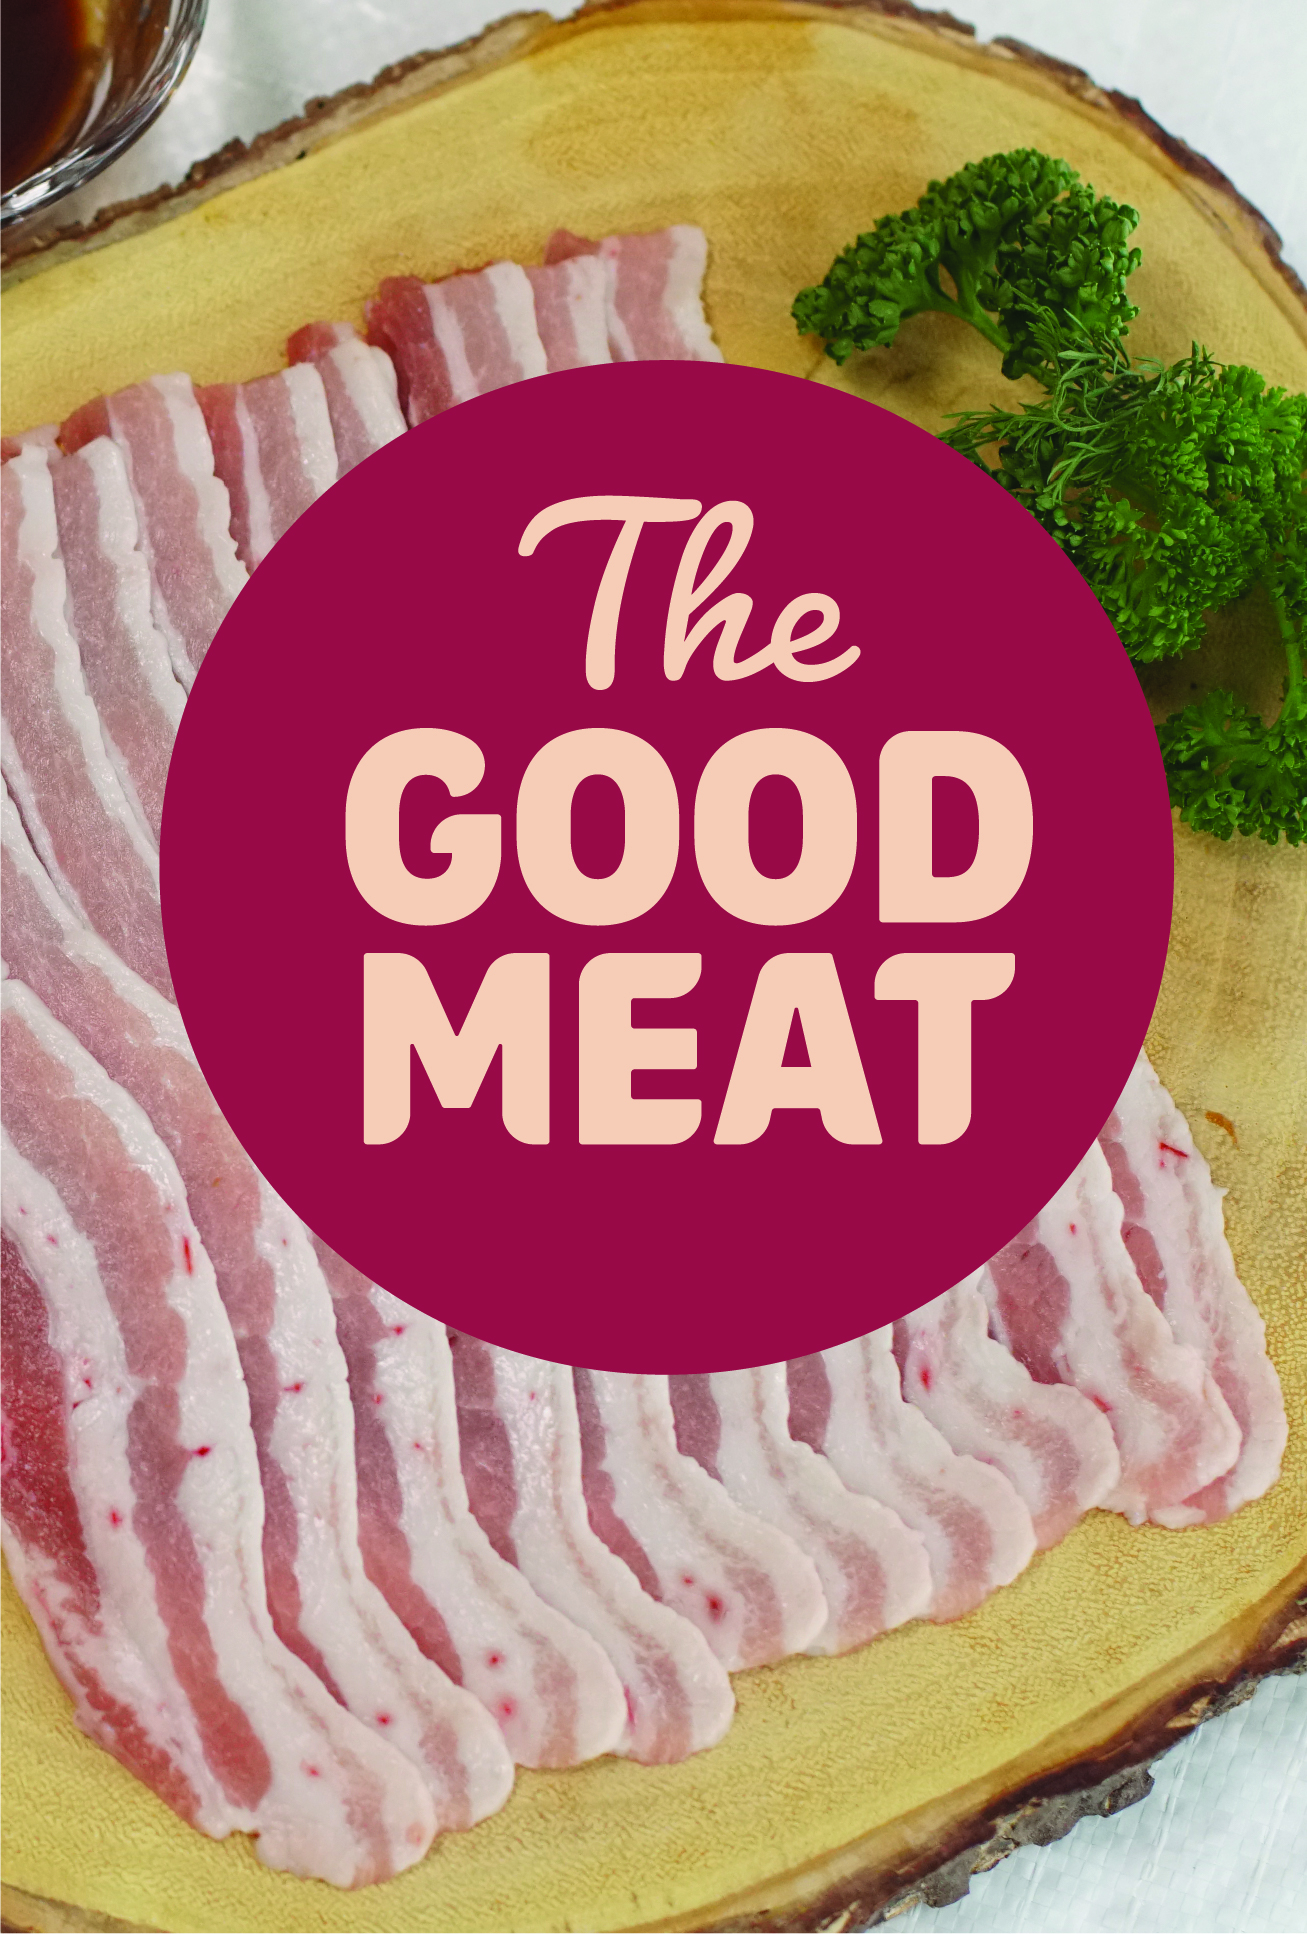 The Good Meat